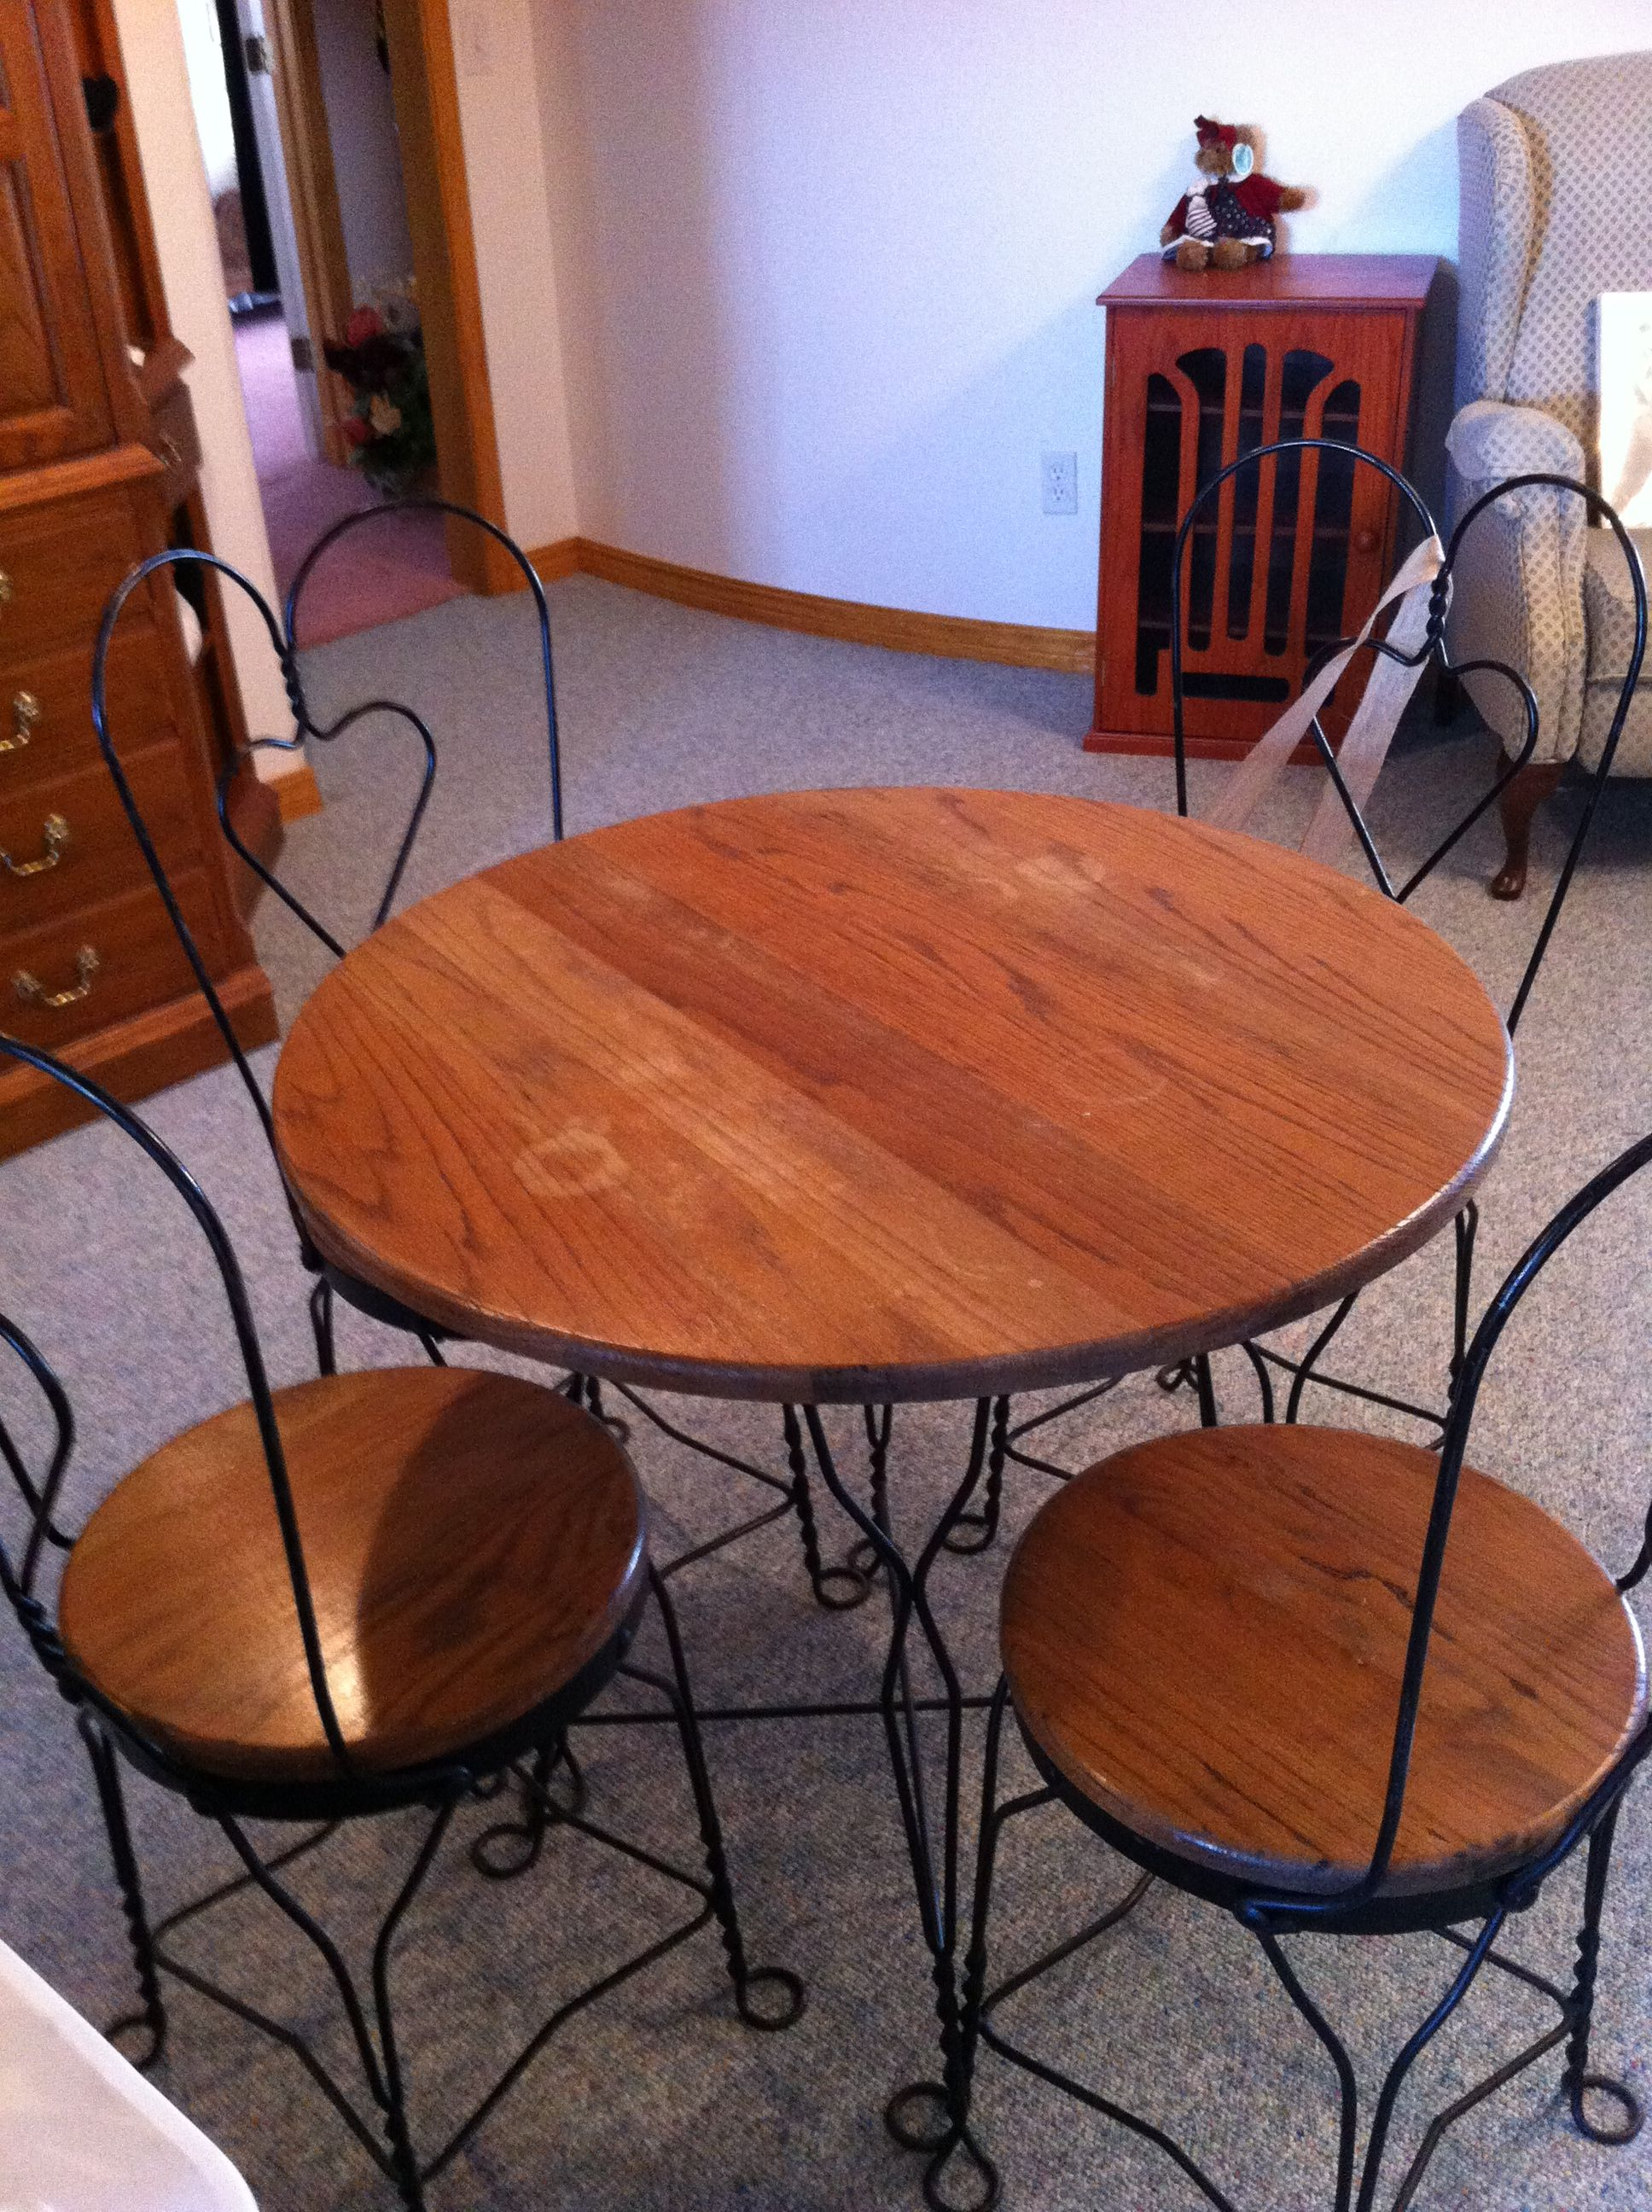 Antique Ice Cream Parlor Table And Chair For At The